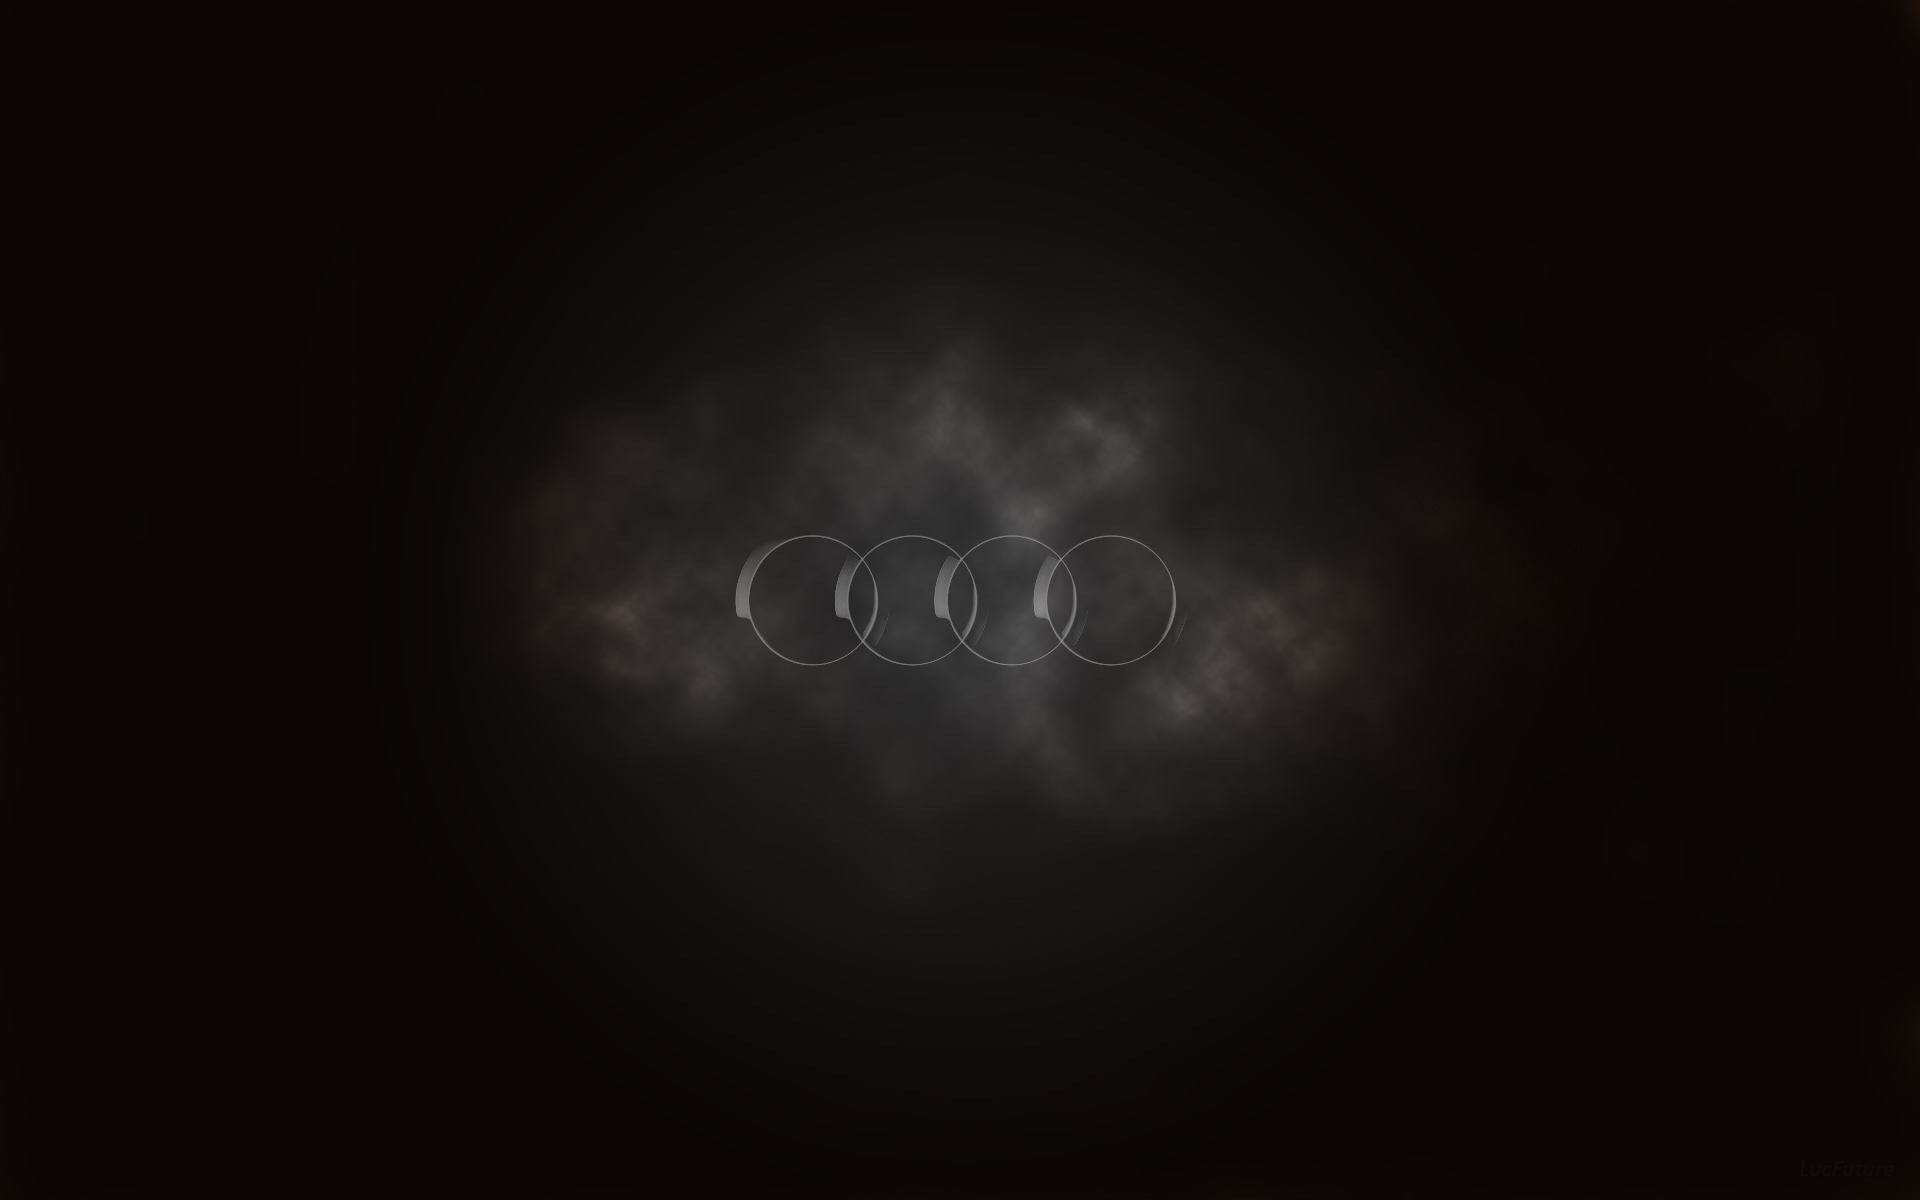 Audi Logo Wallpapers 183 ①